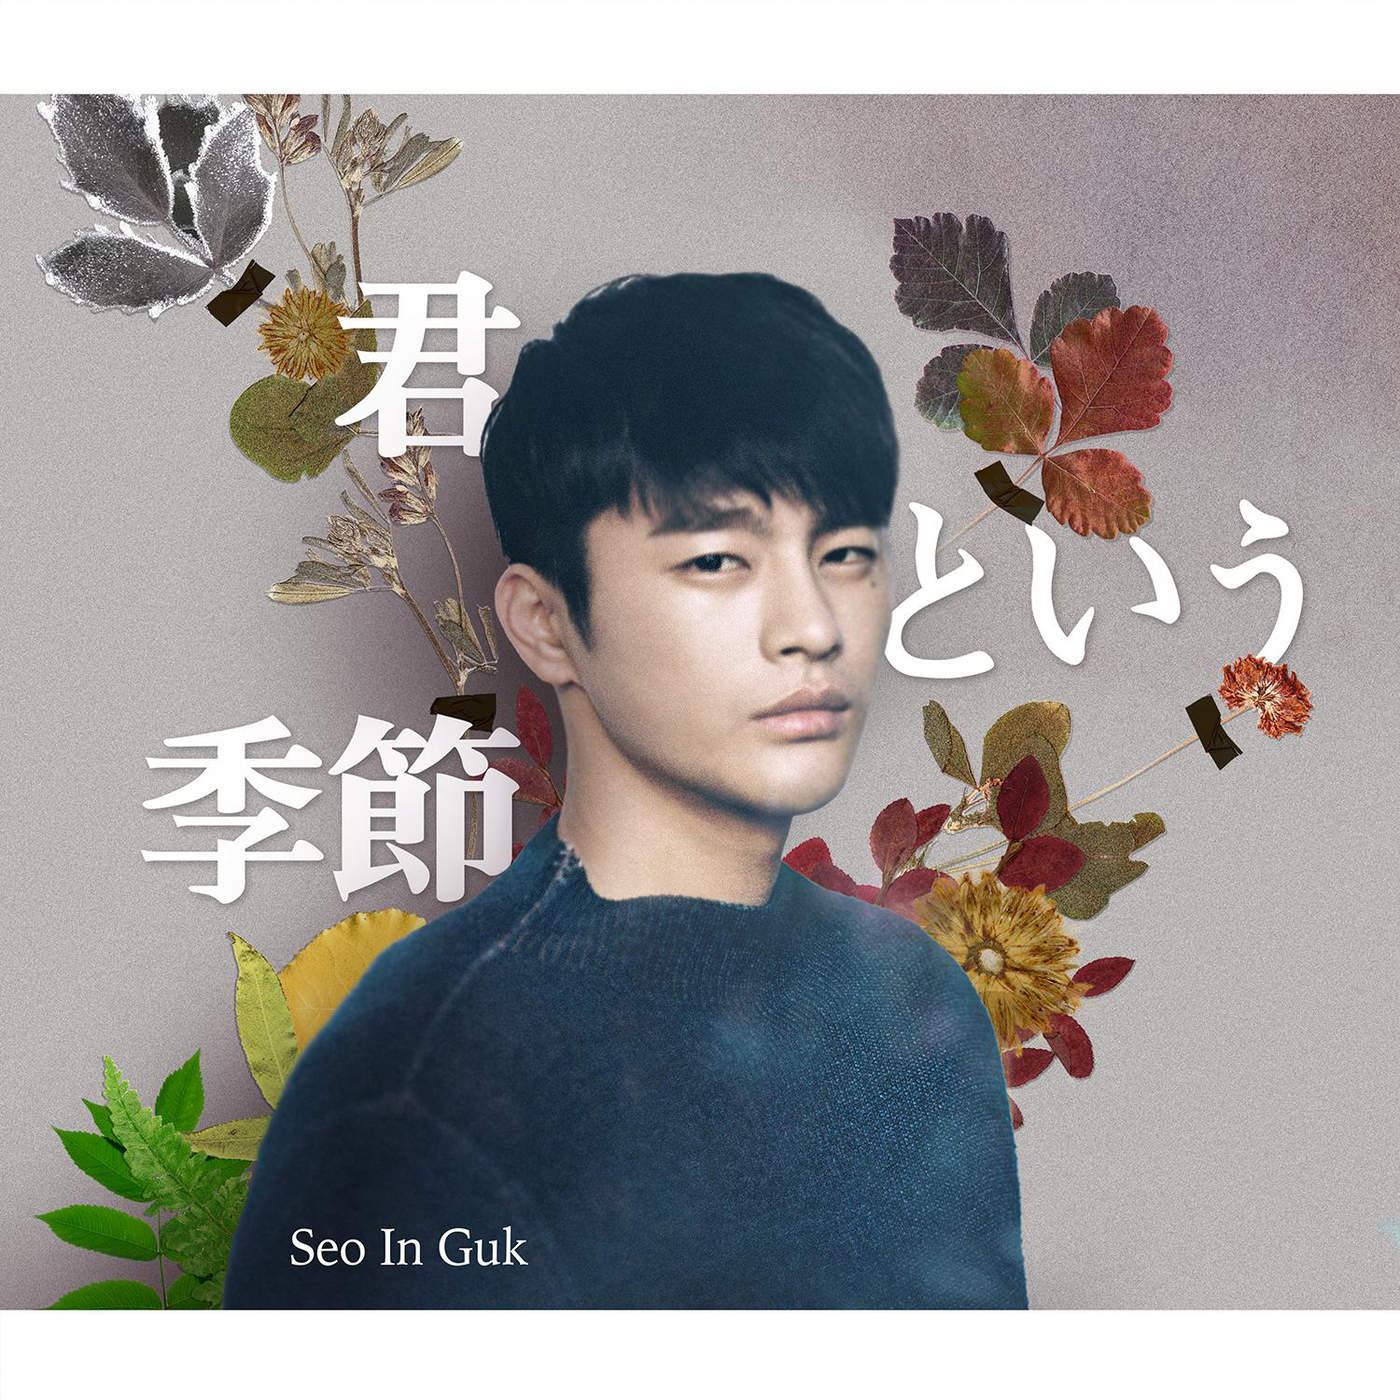 Seo In Guk – Kimitoiu Kisetsu (Japanese Ver.) – Single